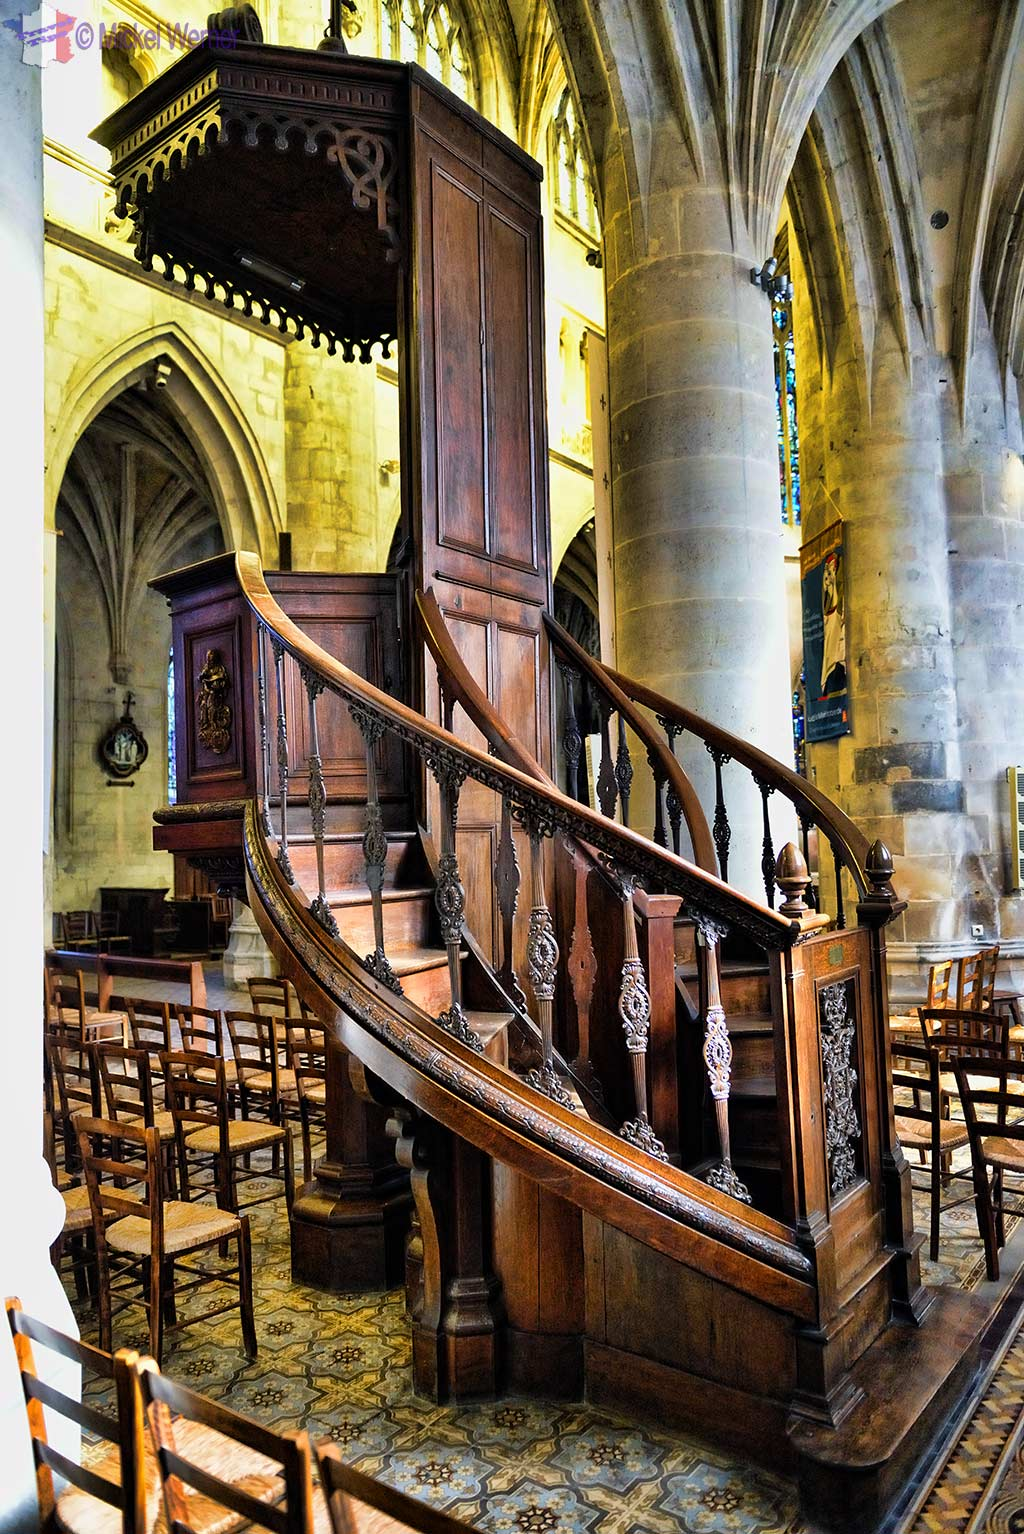 The pulpit of the Saint-Michel church in Pont l'Eveque, Normandy